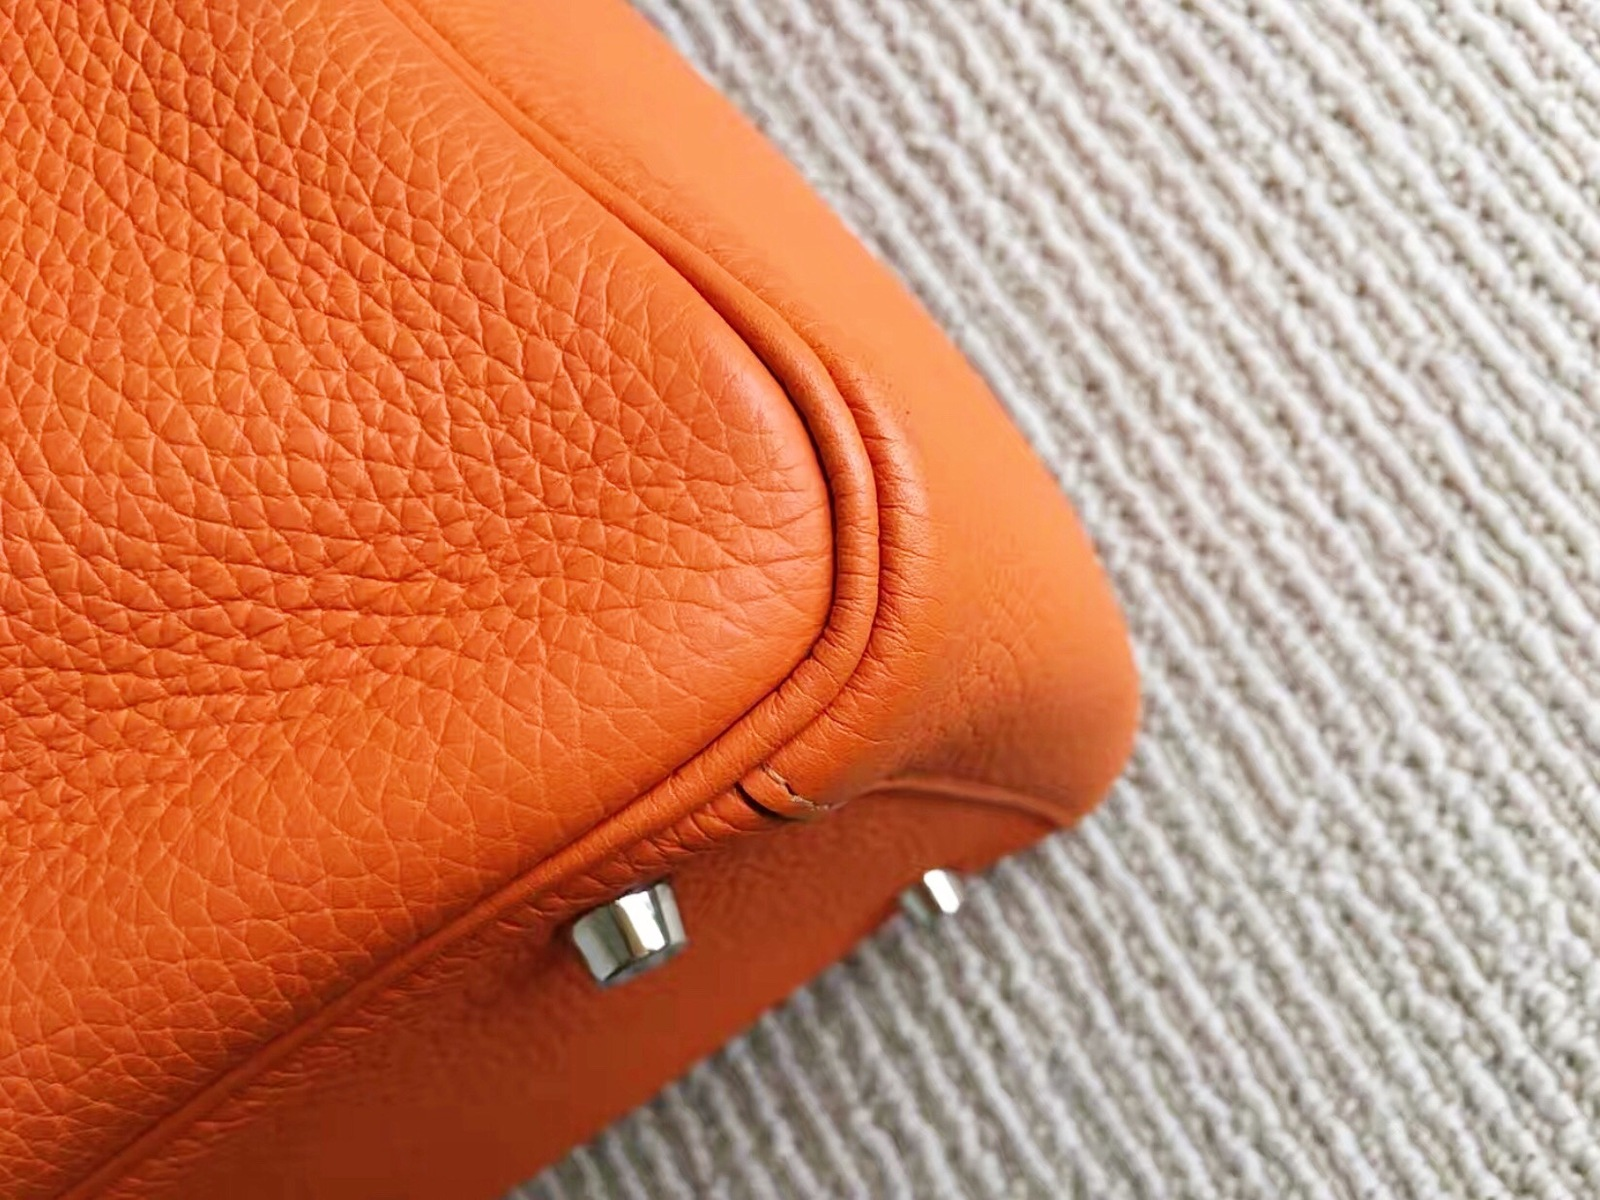 100% Authentic HERMES Taurillon Clemence Lindy 34 ORANGE Shoulder Bag PHW image 7